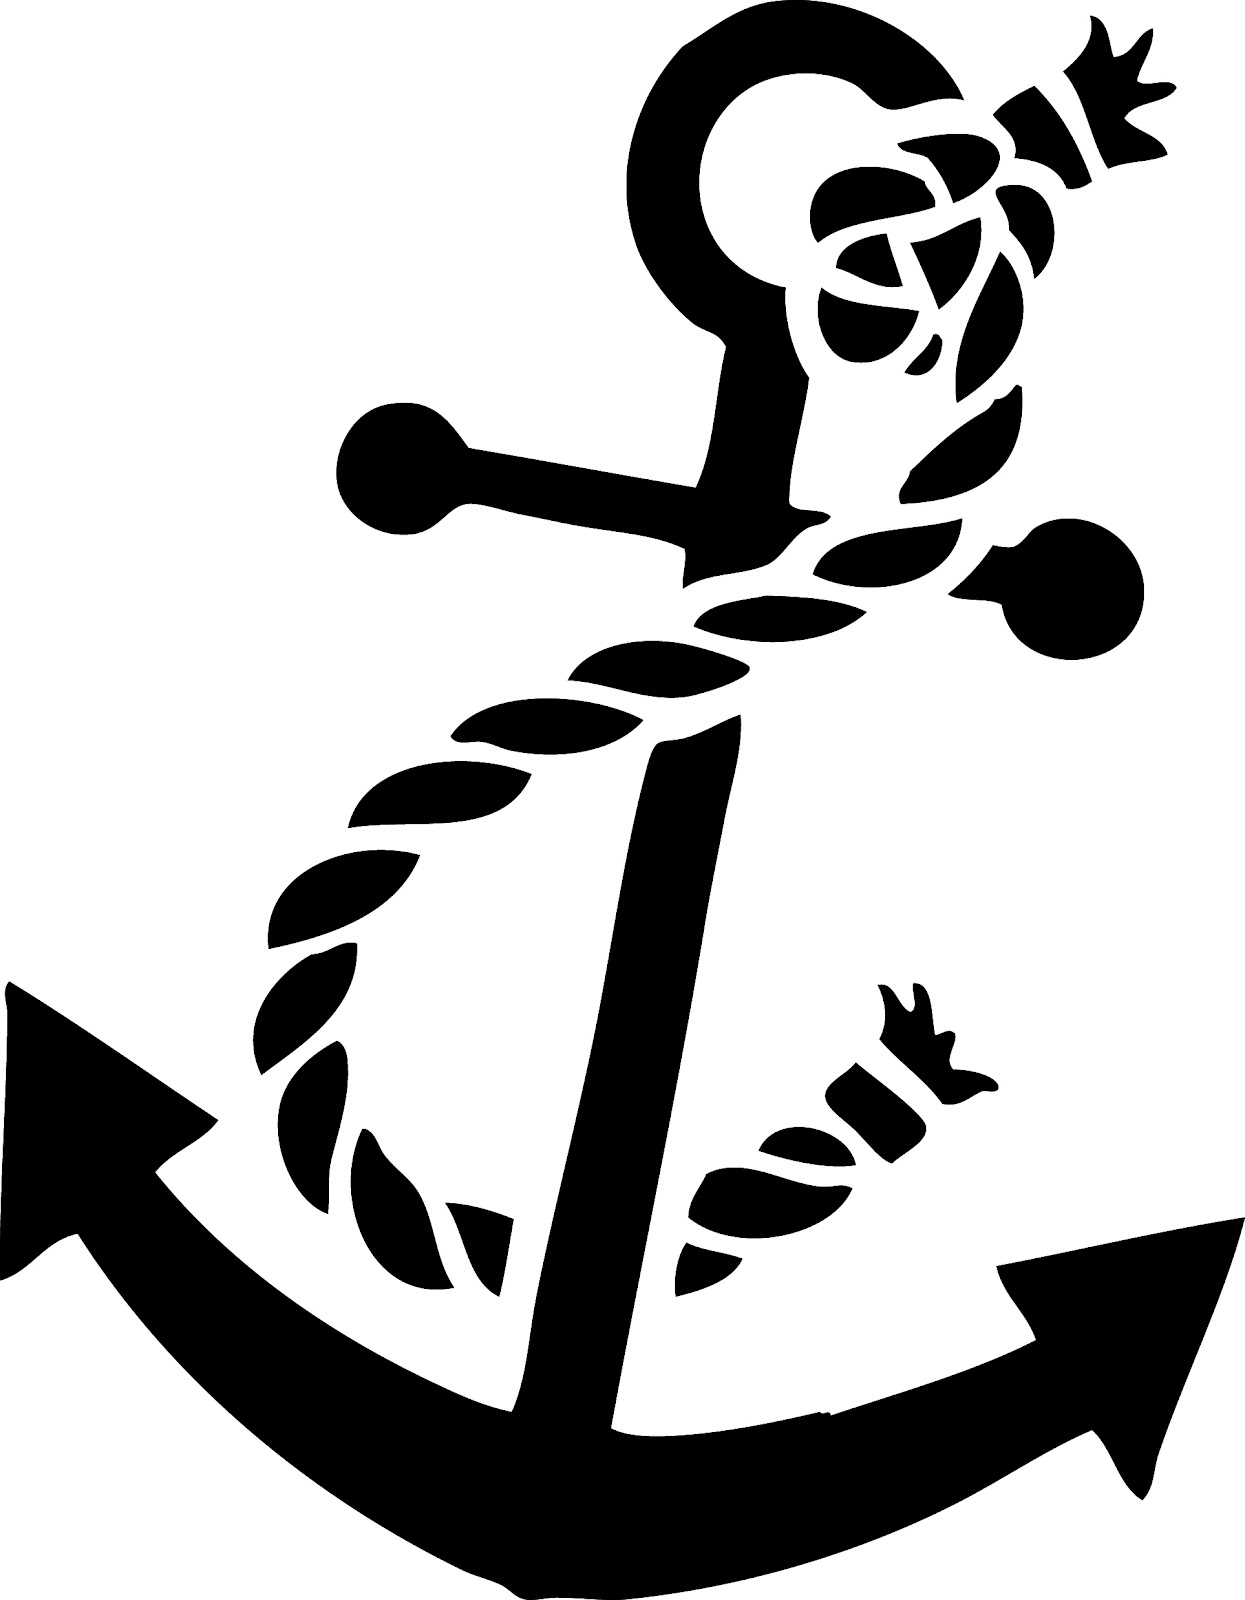 Take Your Picture: Vintage Clip Art - Anchor Silhouette